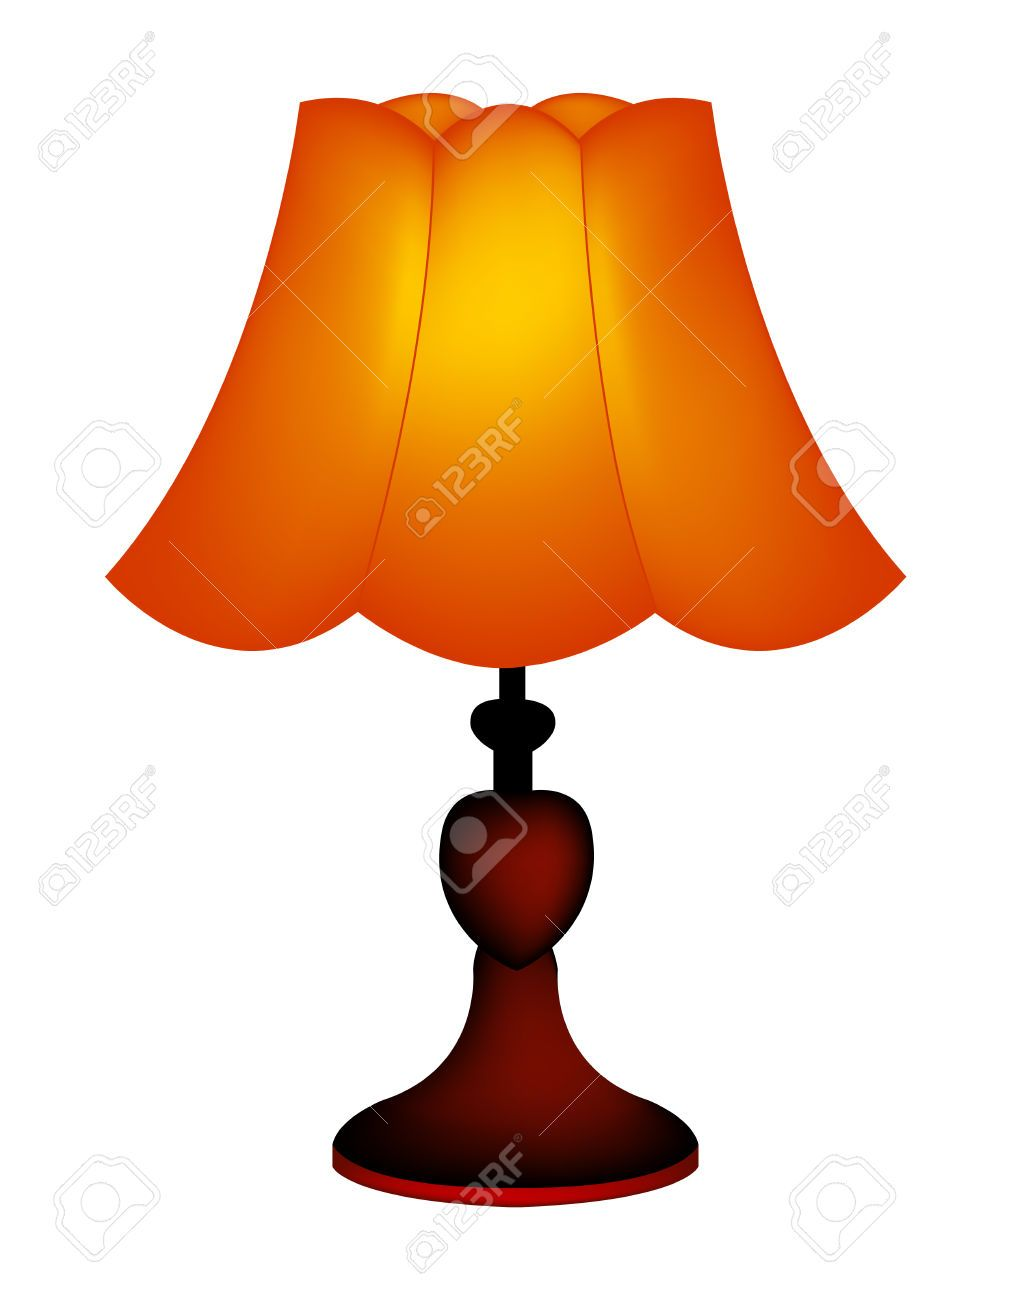 Cartoon Floor Lamp With Shade Lamps Clipart Lampshade Pencil And In Color Lamps Cartoon Floor Lamp With Shade In 2020 Lamp Disney Lamp Vintage Lamps